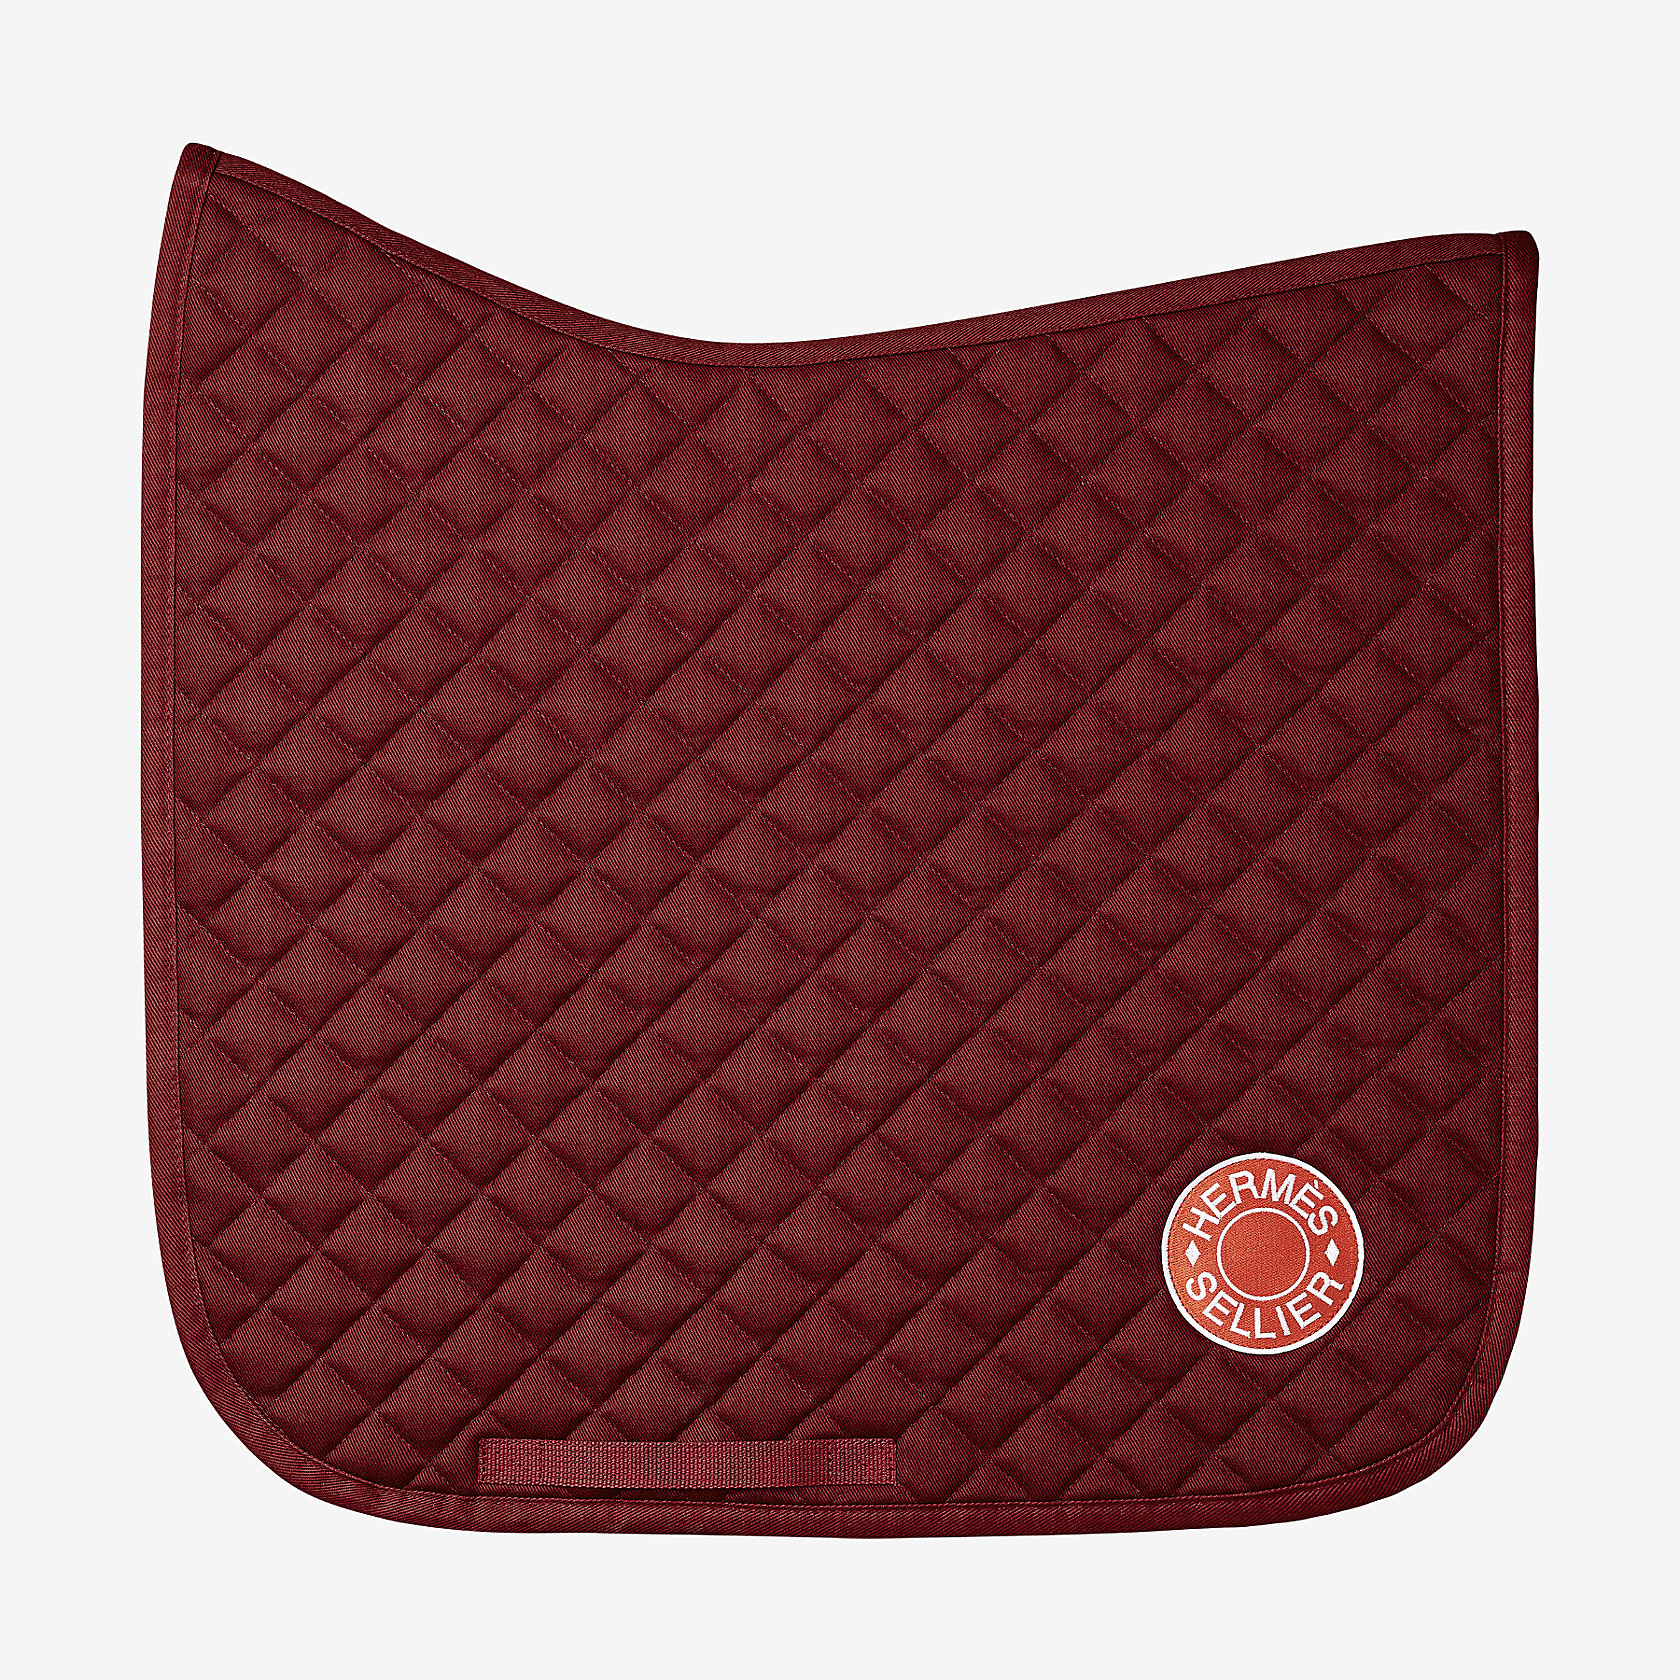 Swing dressage saddle pad hermès